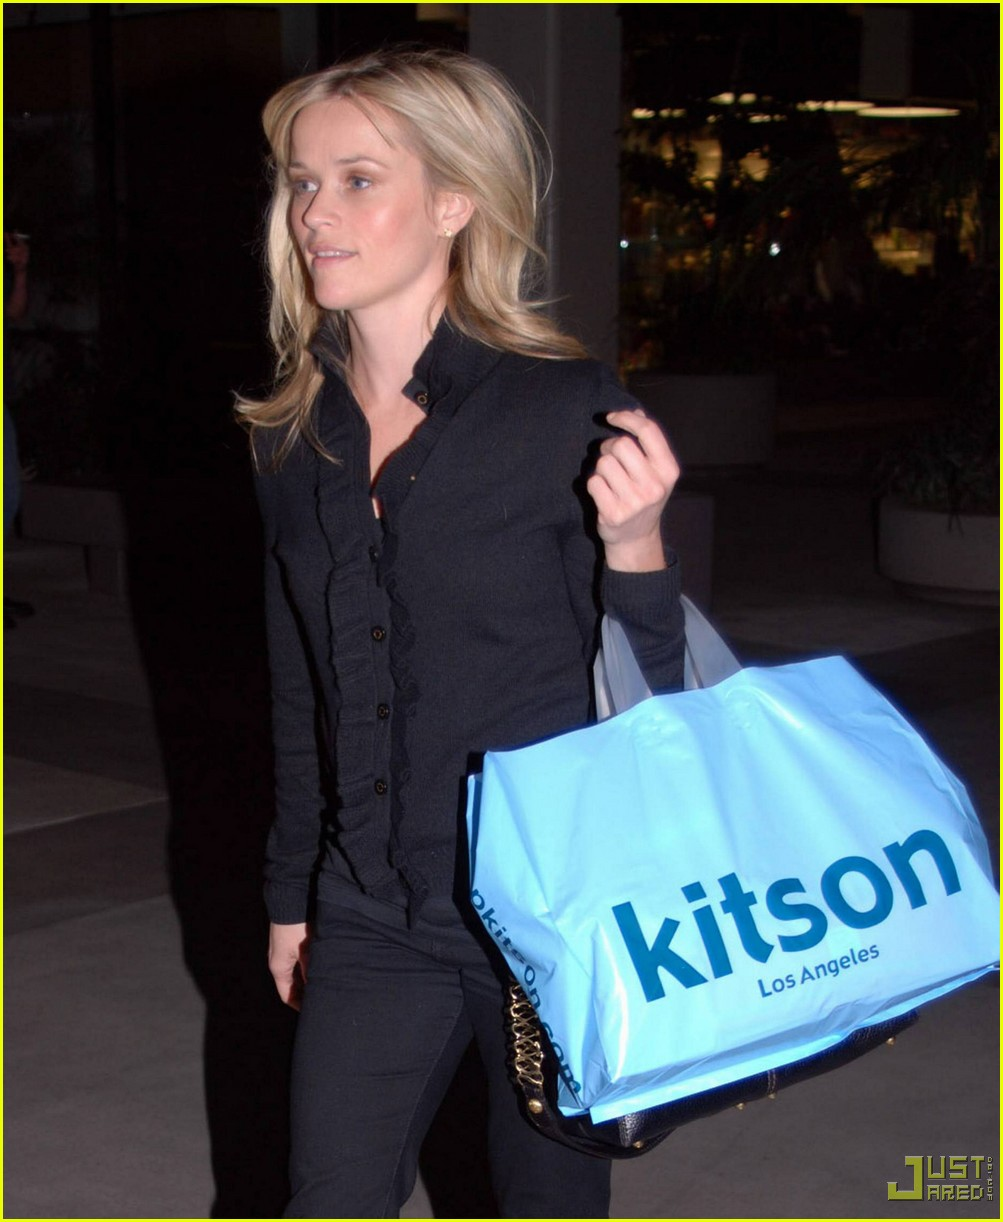 reese witherspoon single shopping kitson 09